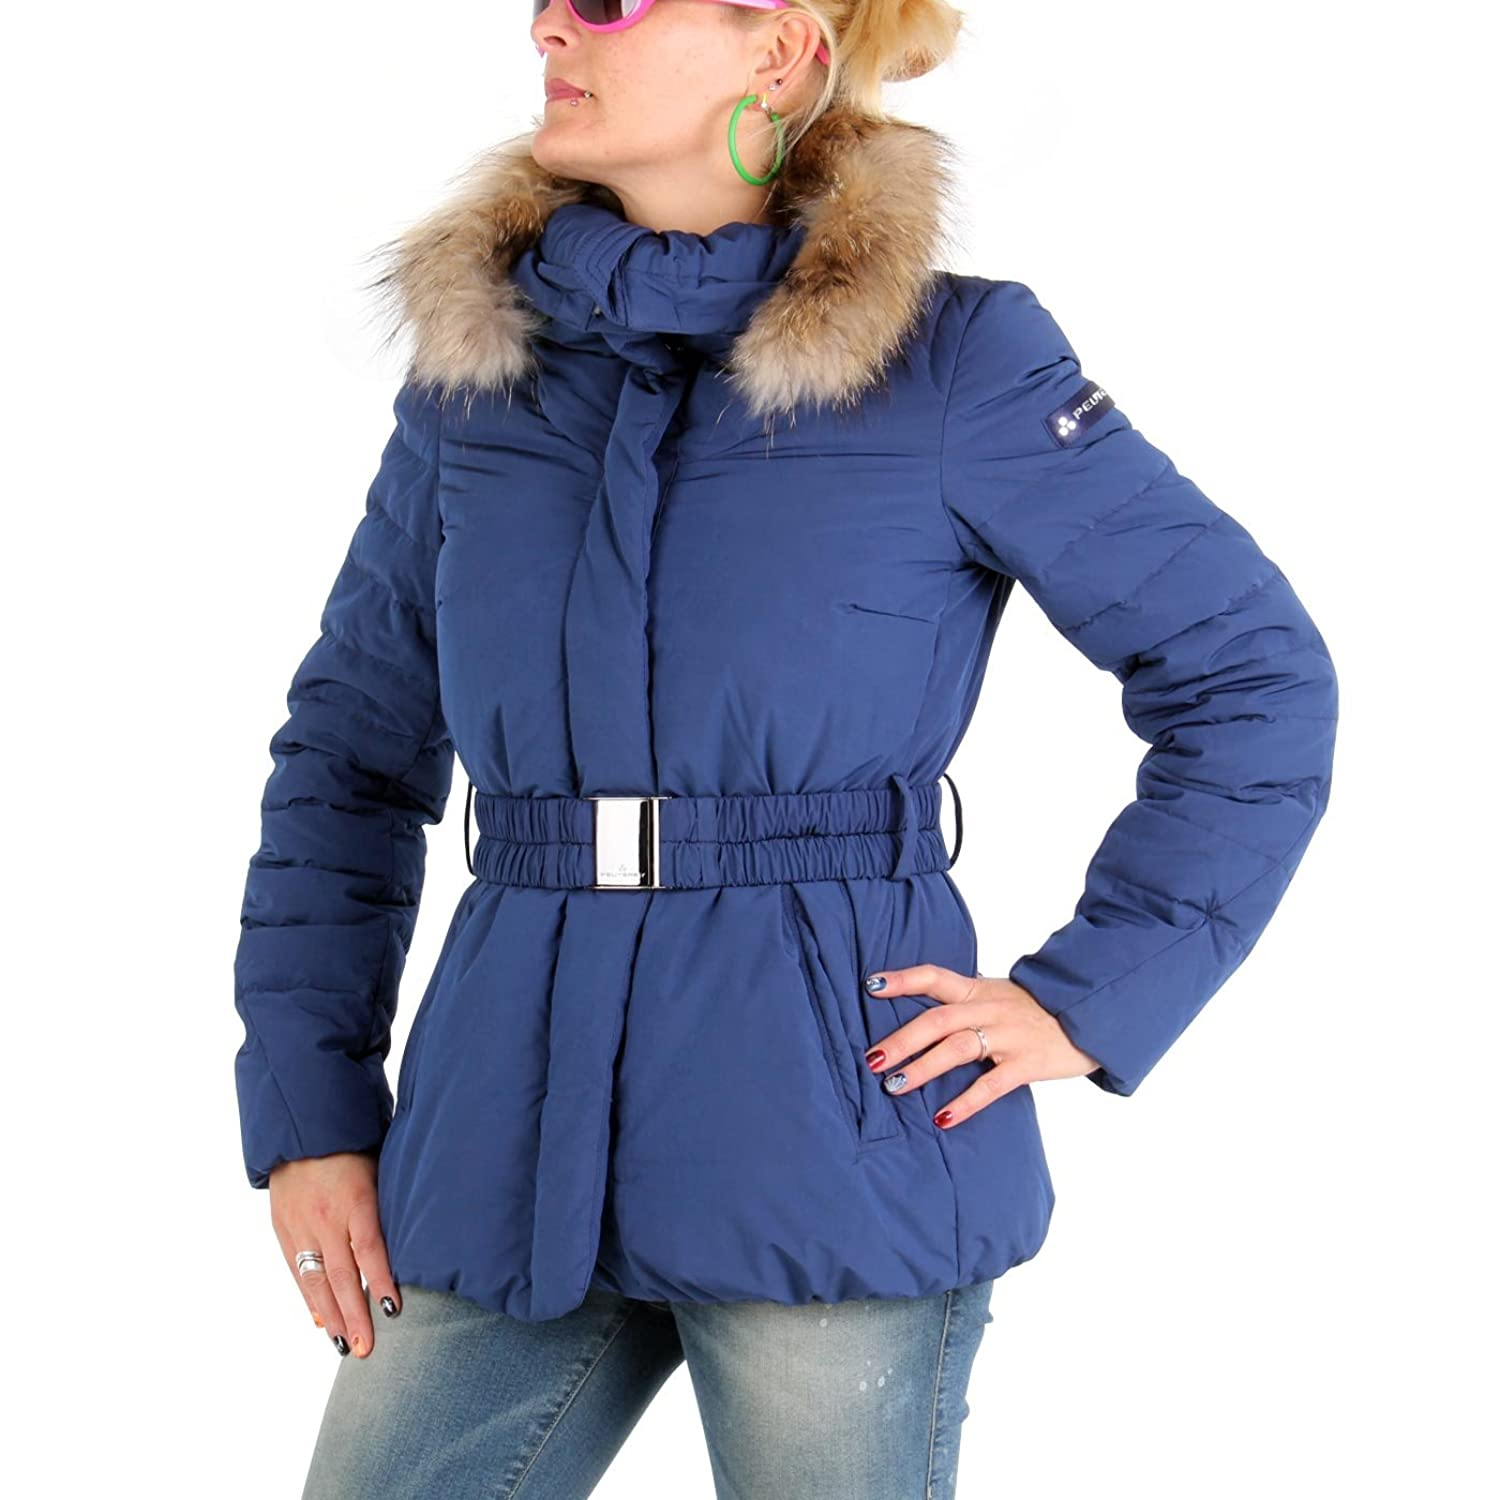 PEUTEREY Damen Winter Daunenjacke Messy Blue 556 günstig